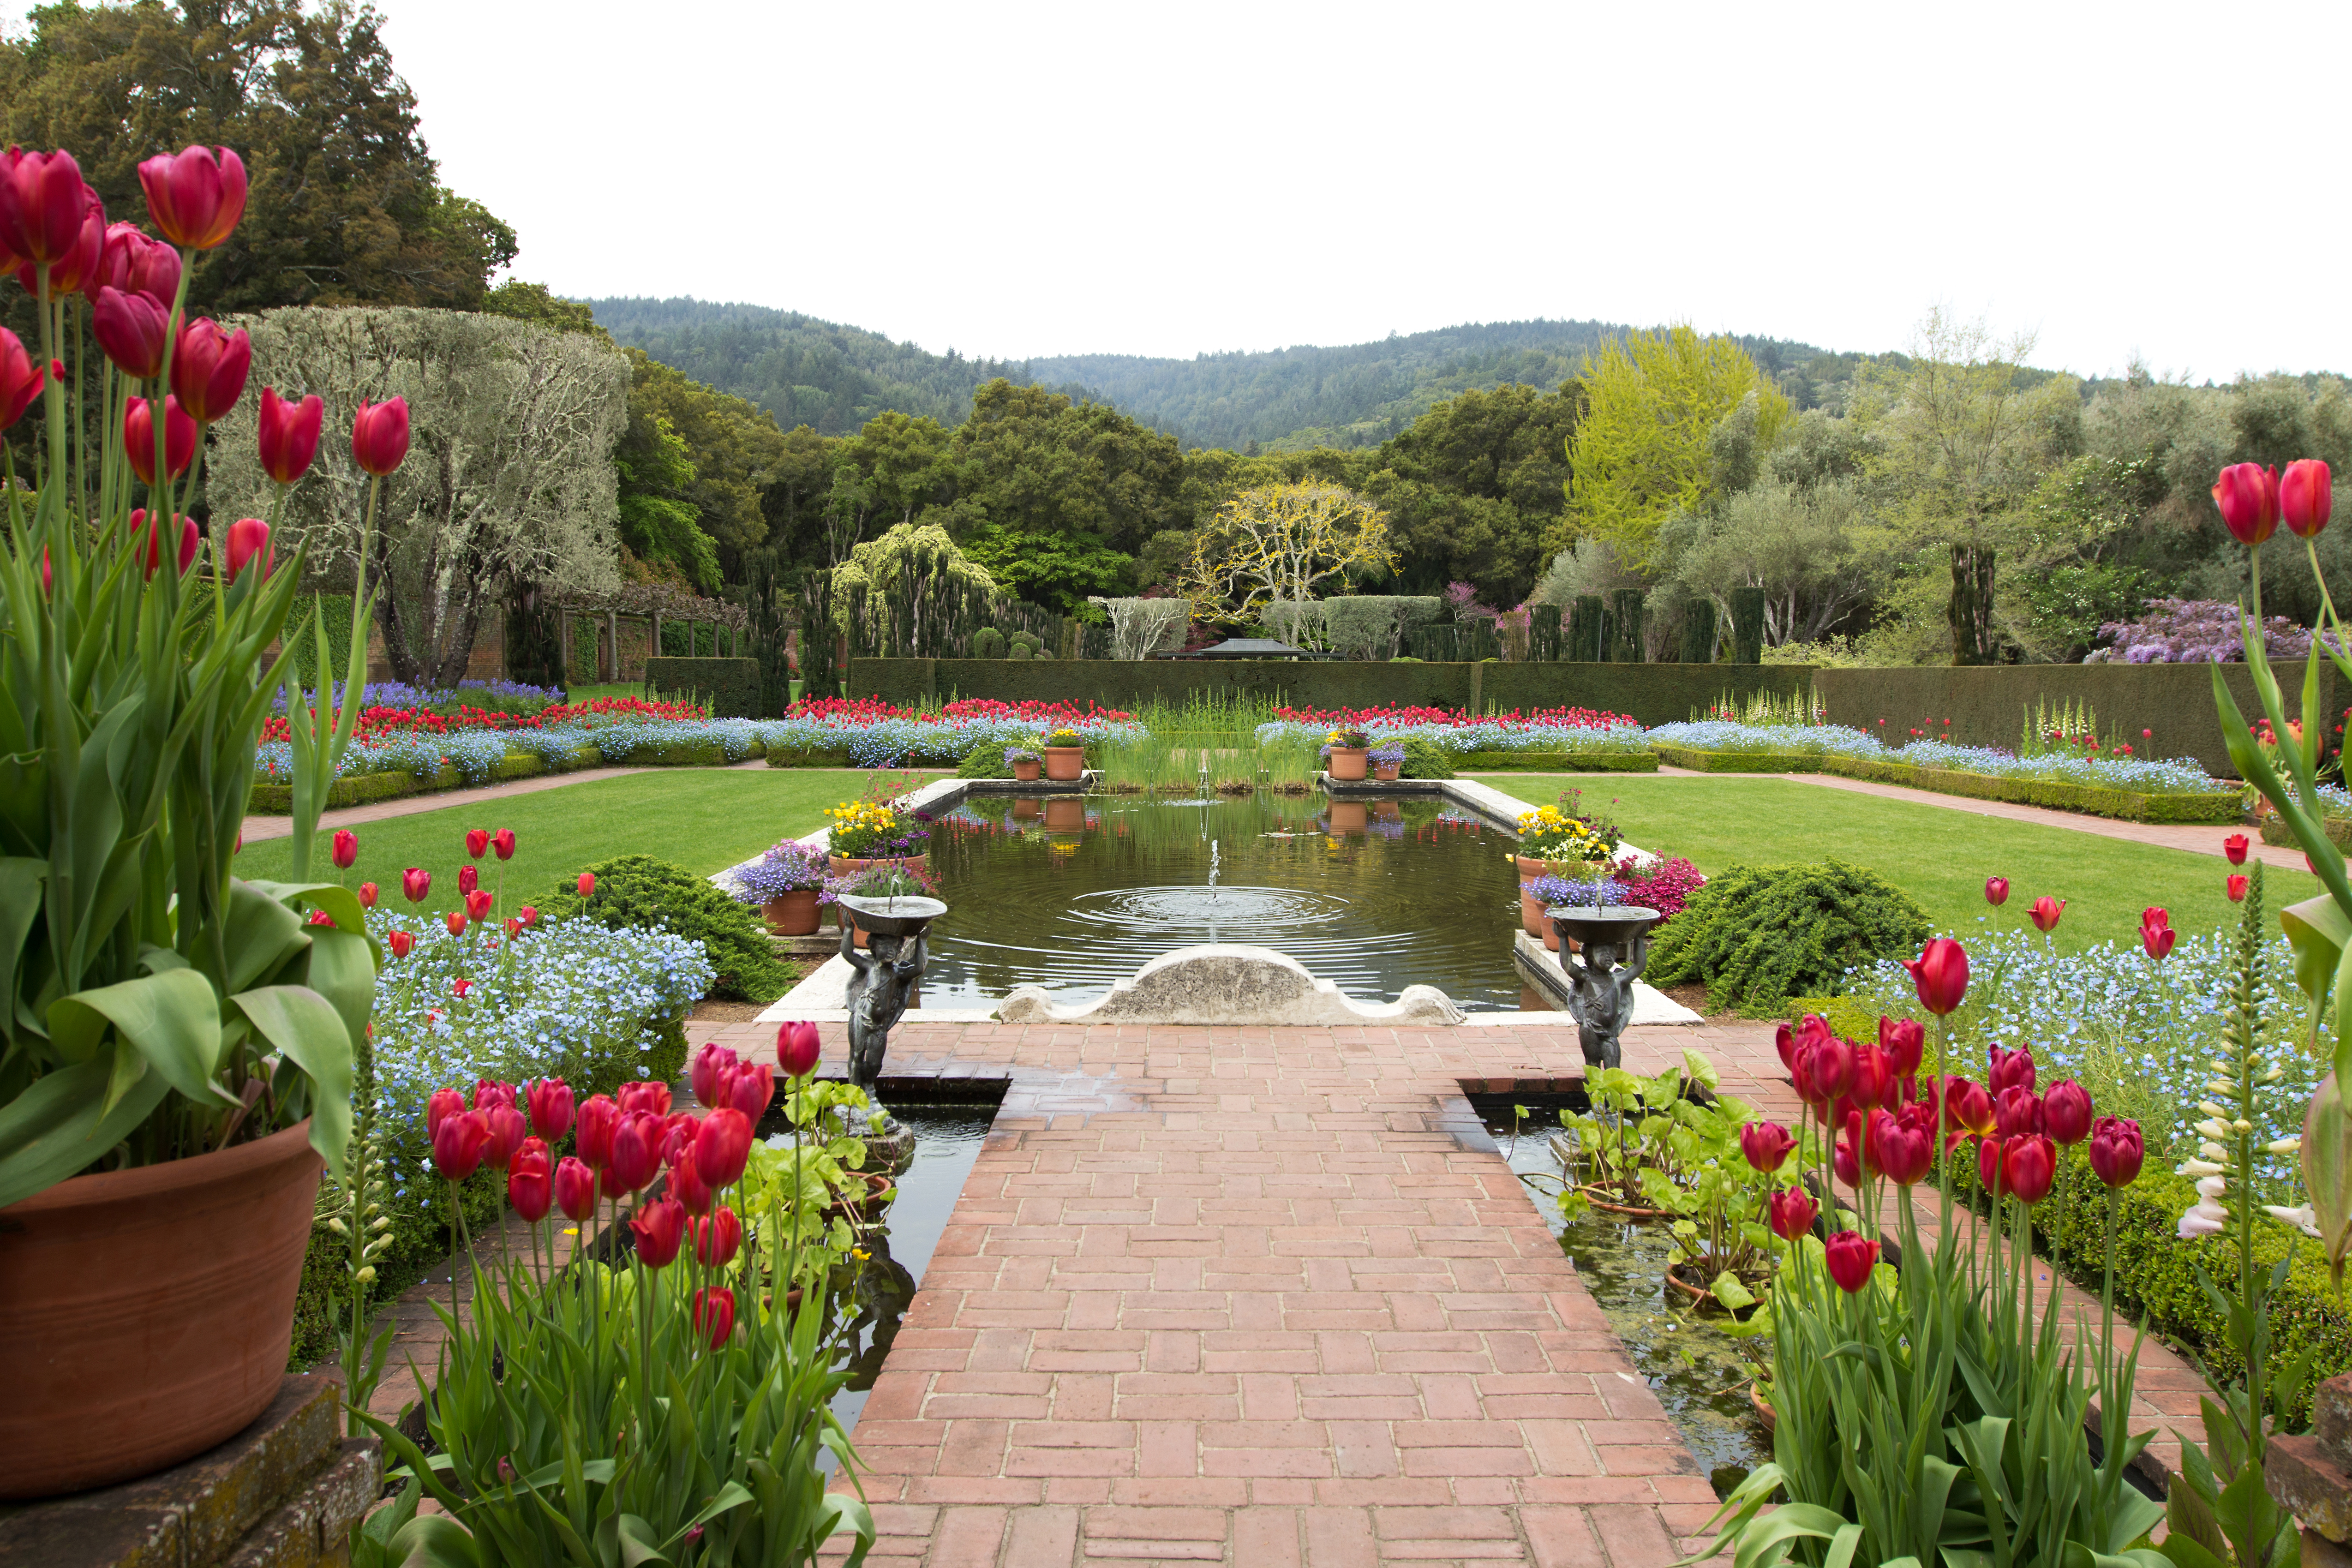 Gardens with reflecting pool and tulips in bloom.